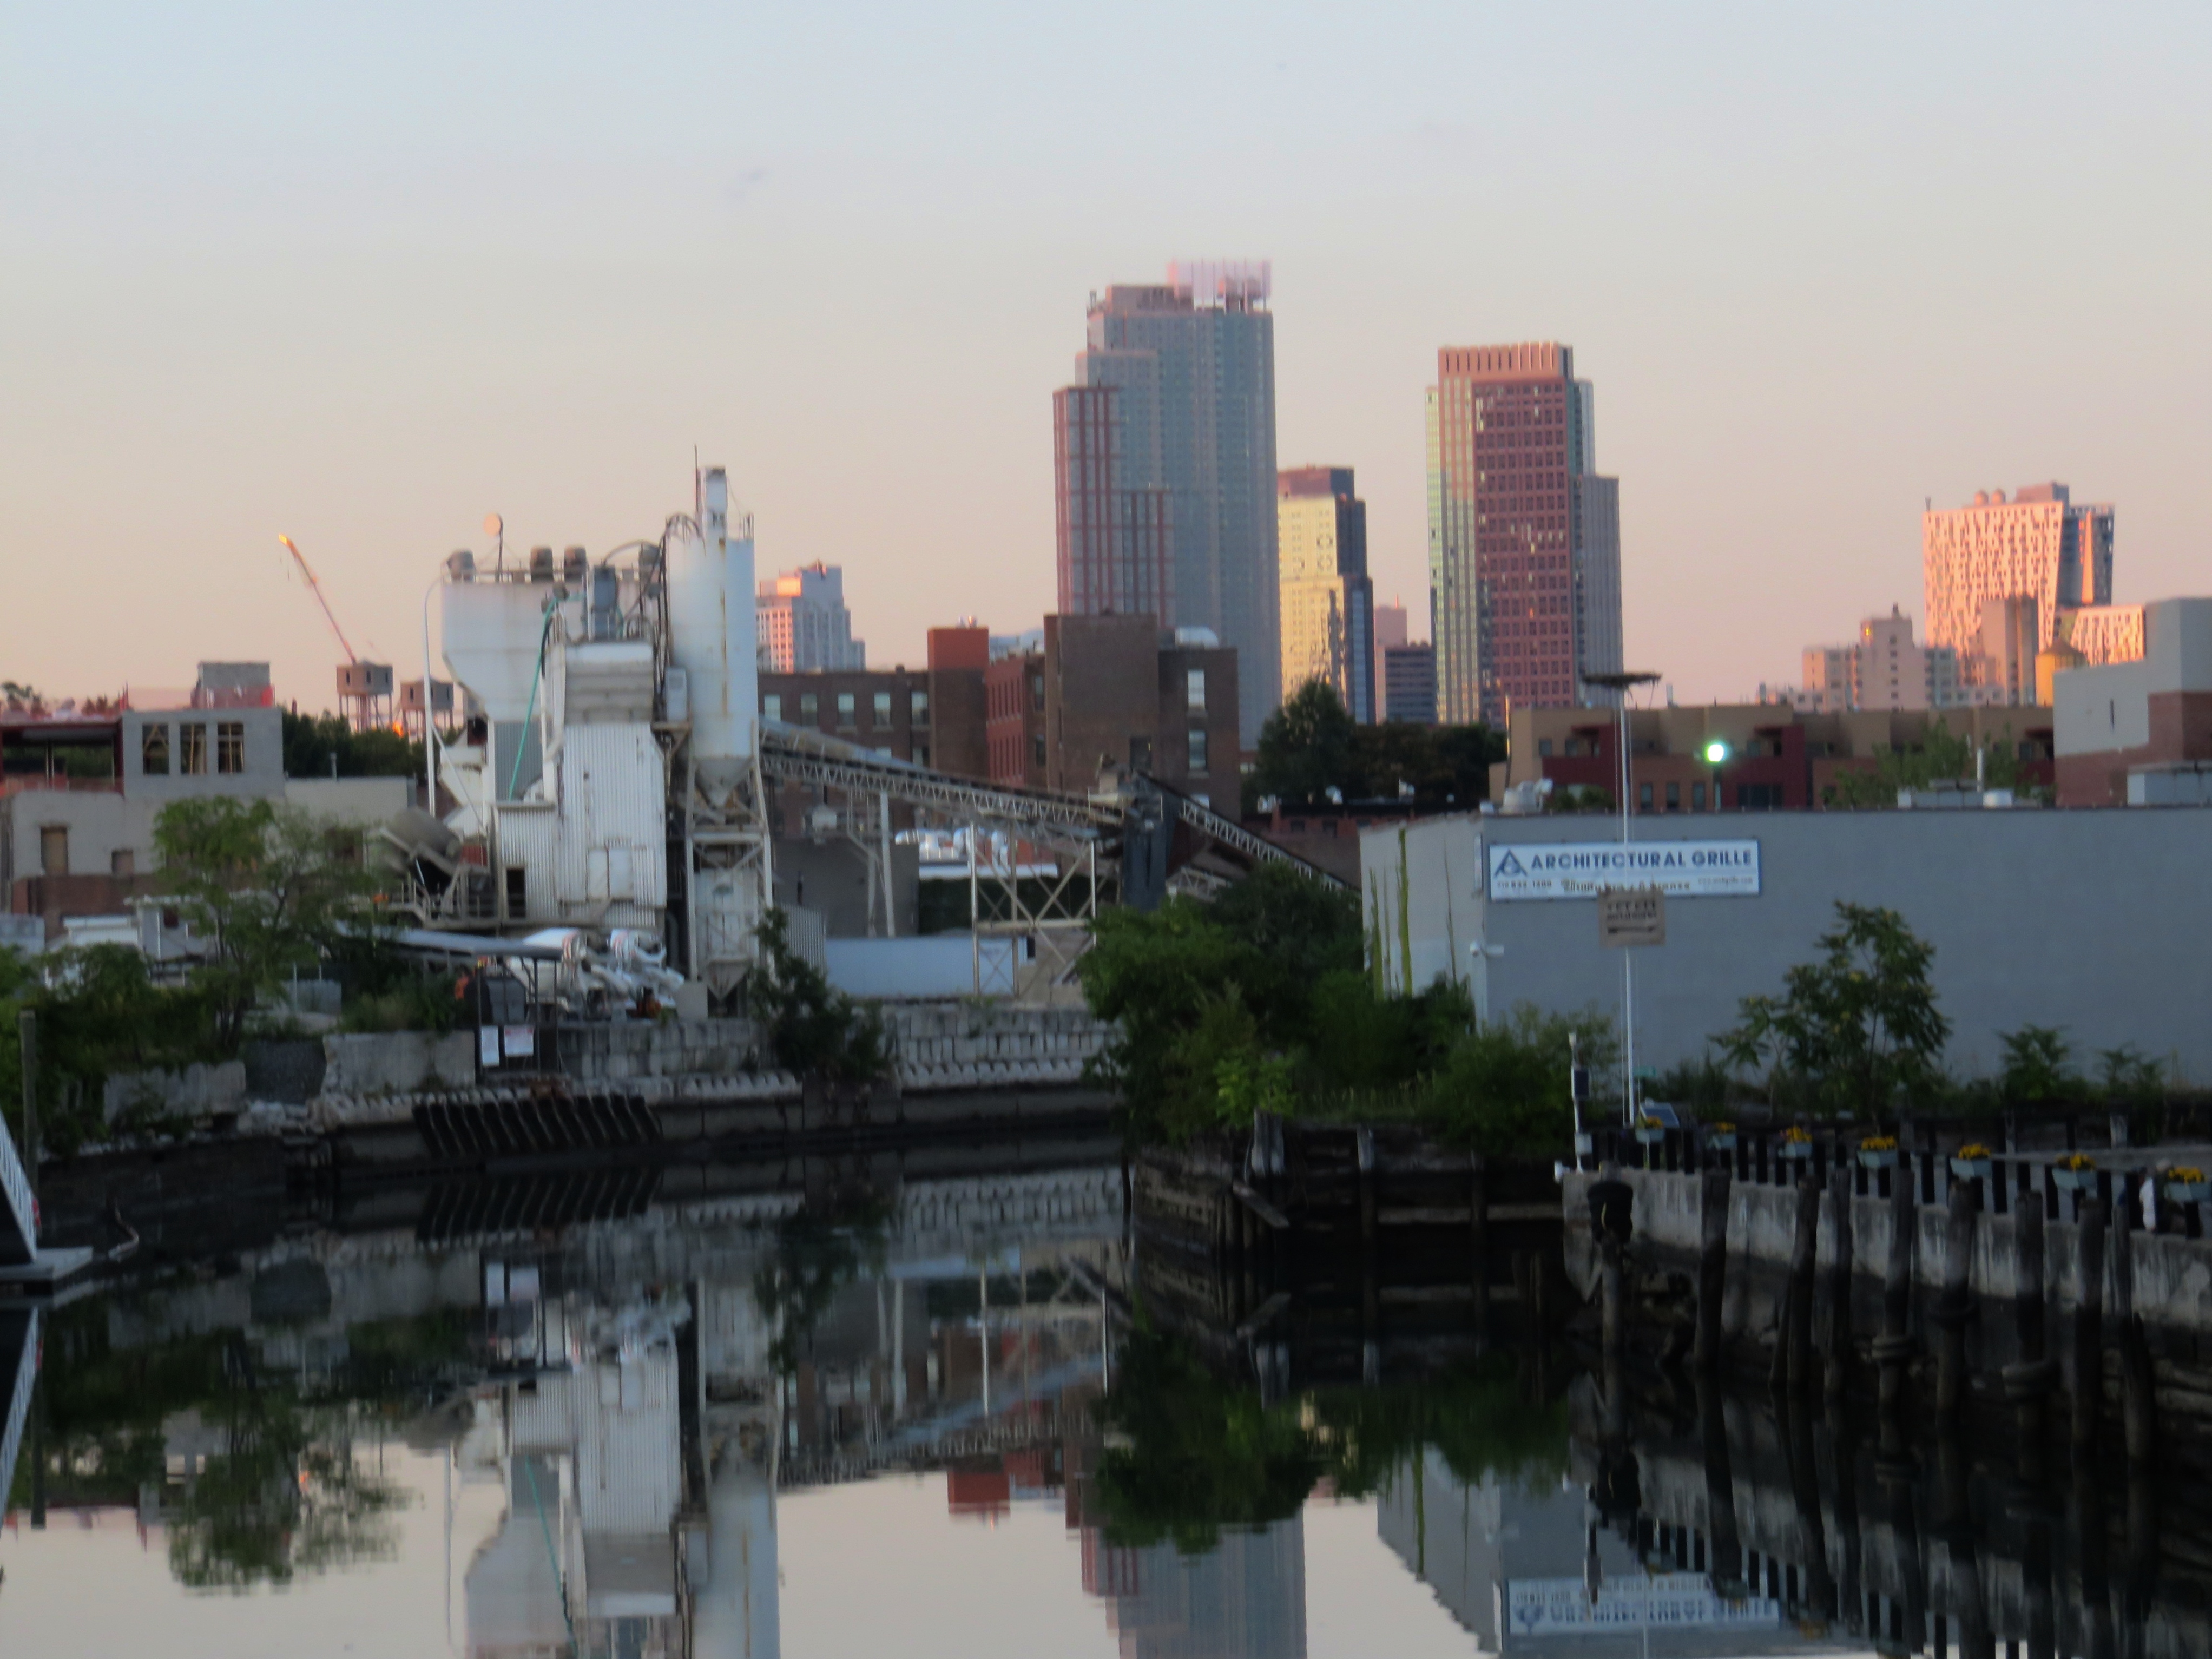 Photo taken in Gowanus, Brooklyn.